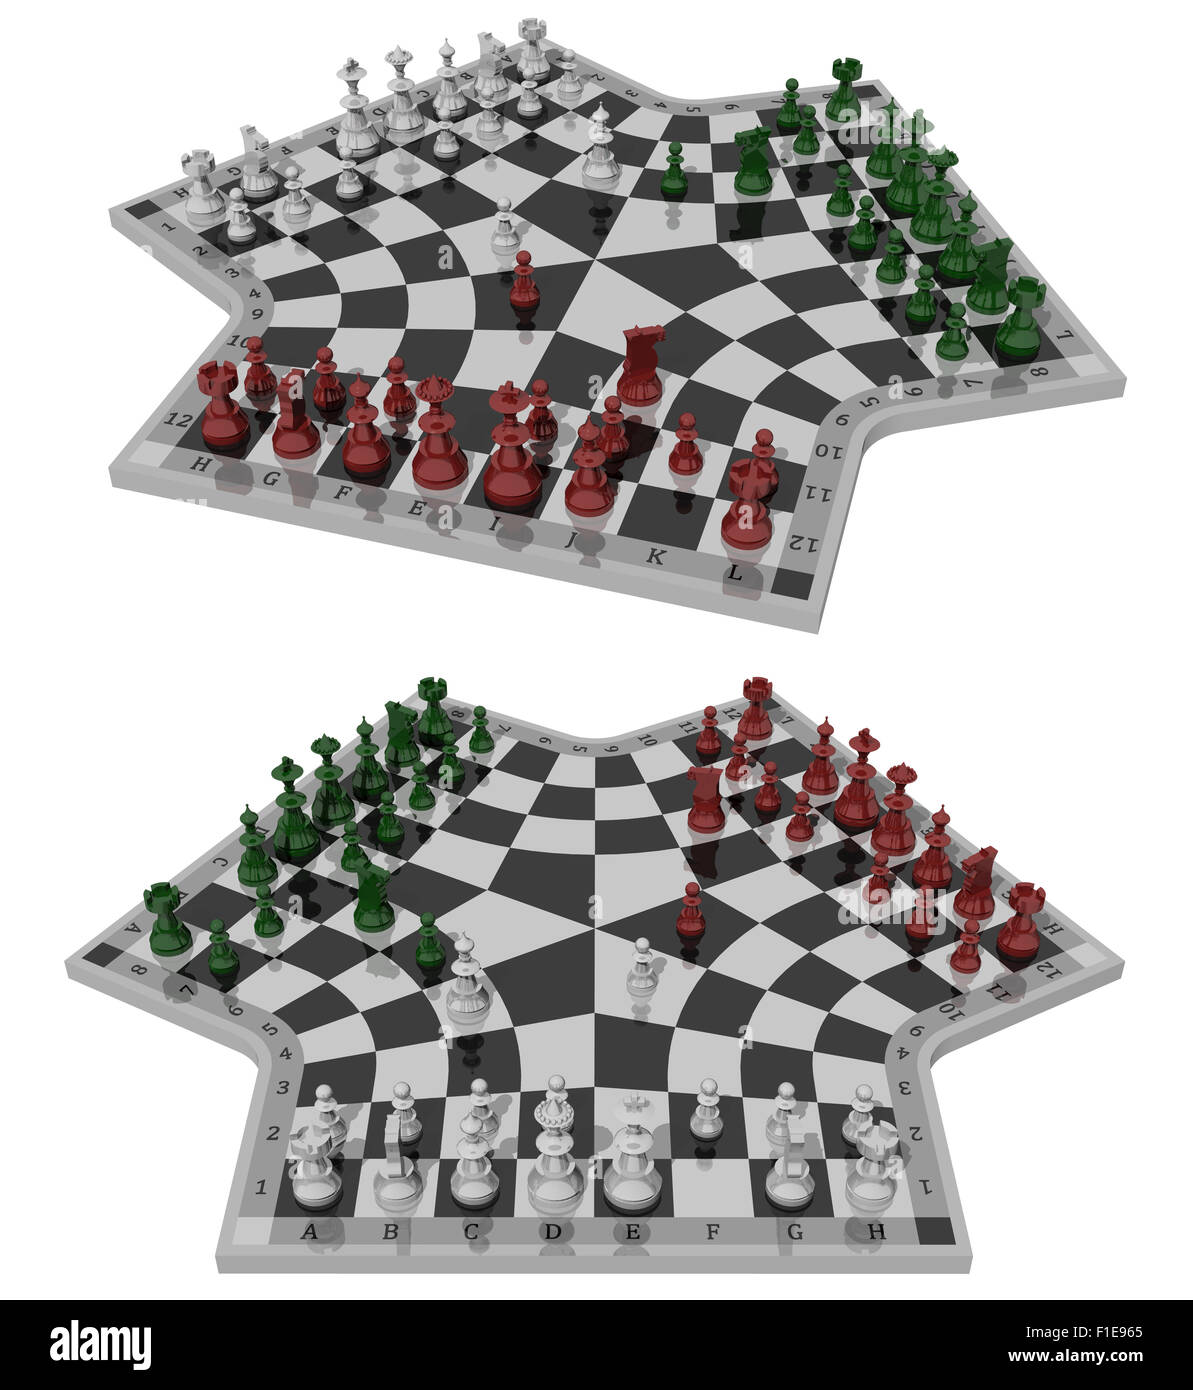 Three-handed chess, two views - Stock Image